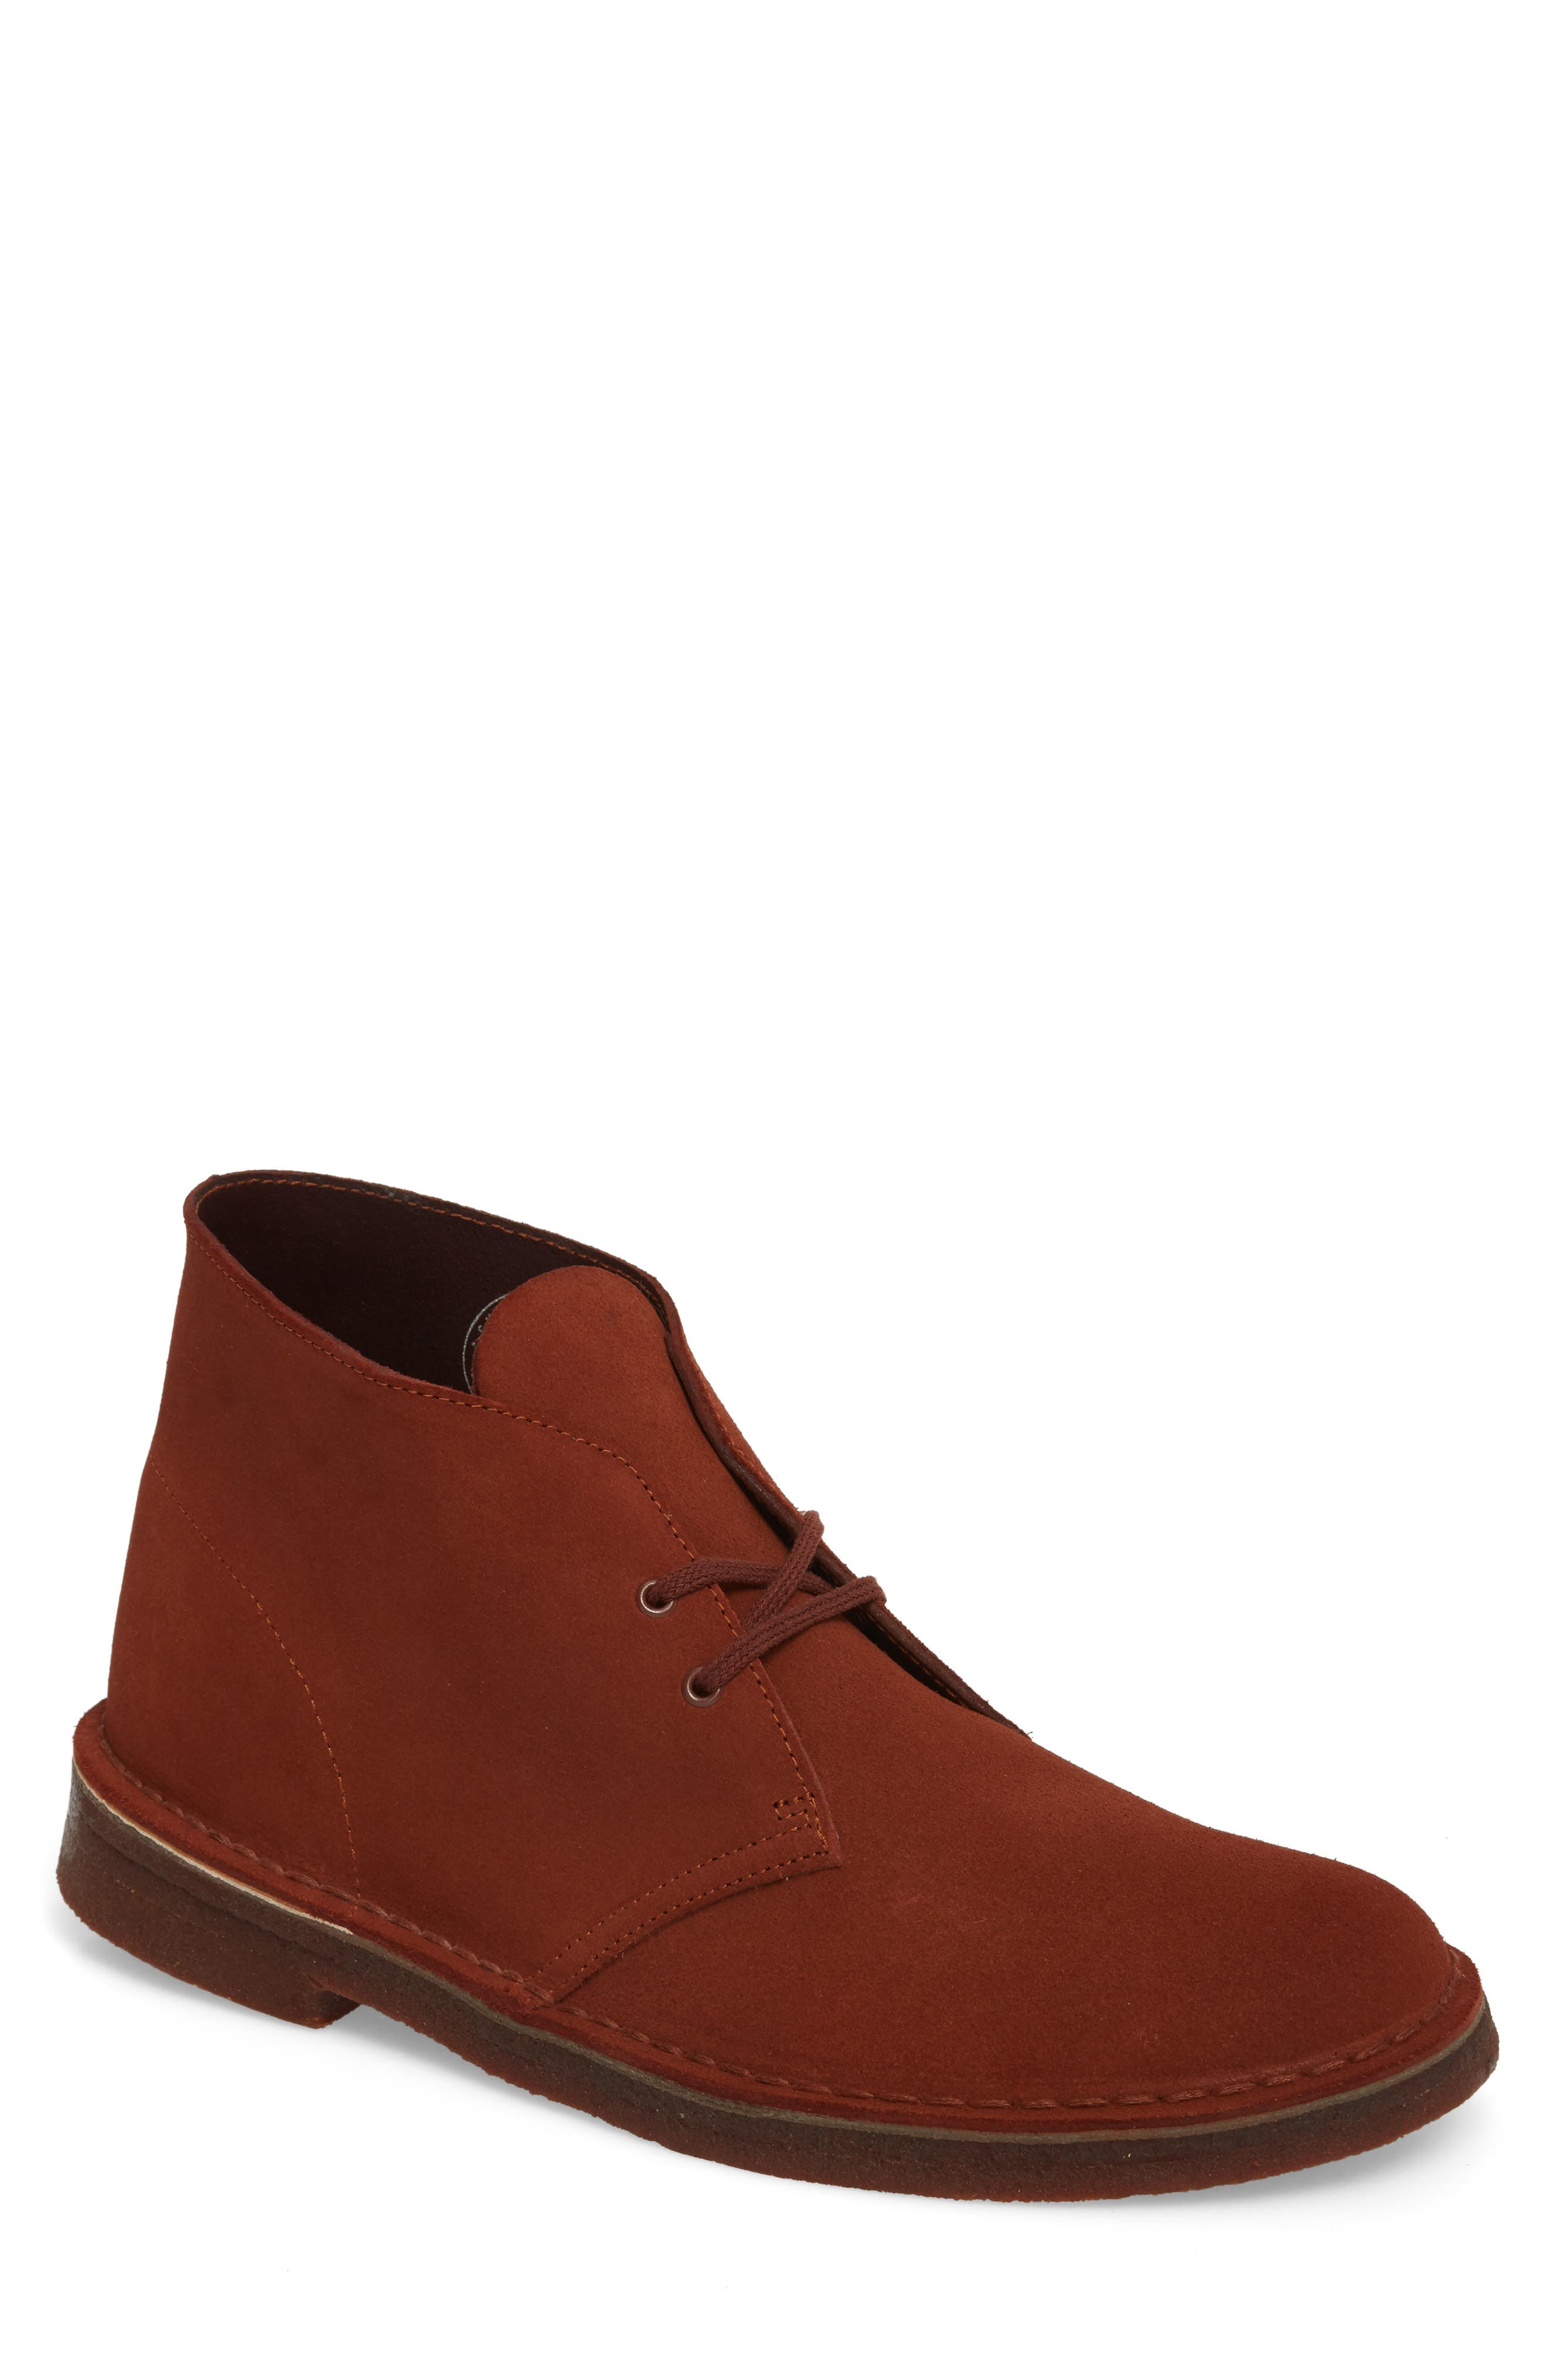 Clarks<sup>®</sup> Desert Boot,                             Main thumbnail 1, color,                             MAHOGANY LEATHER